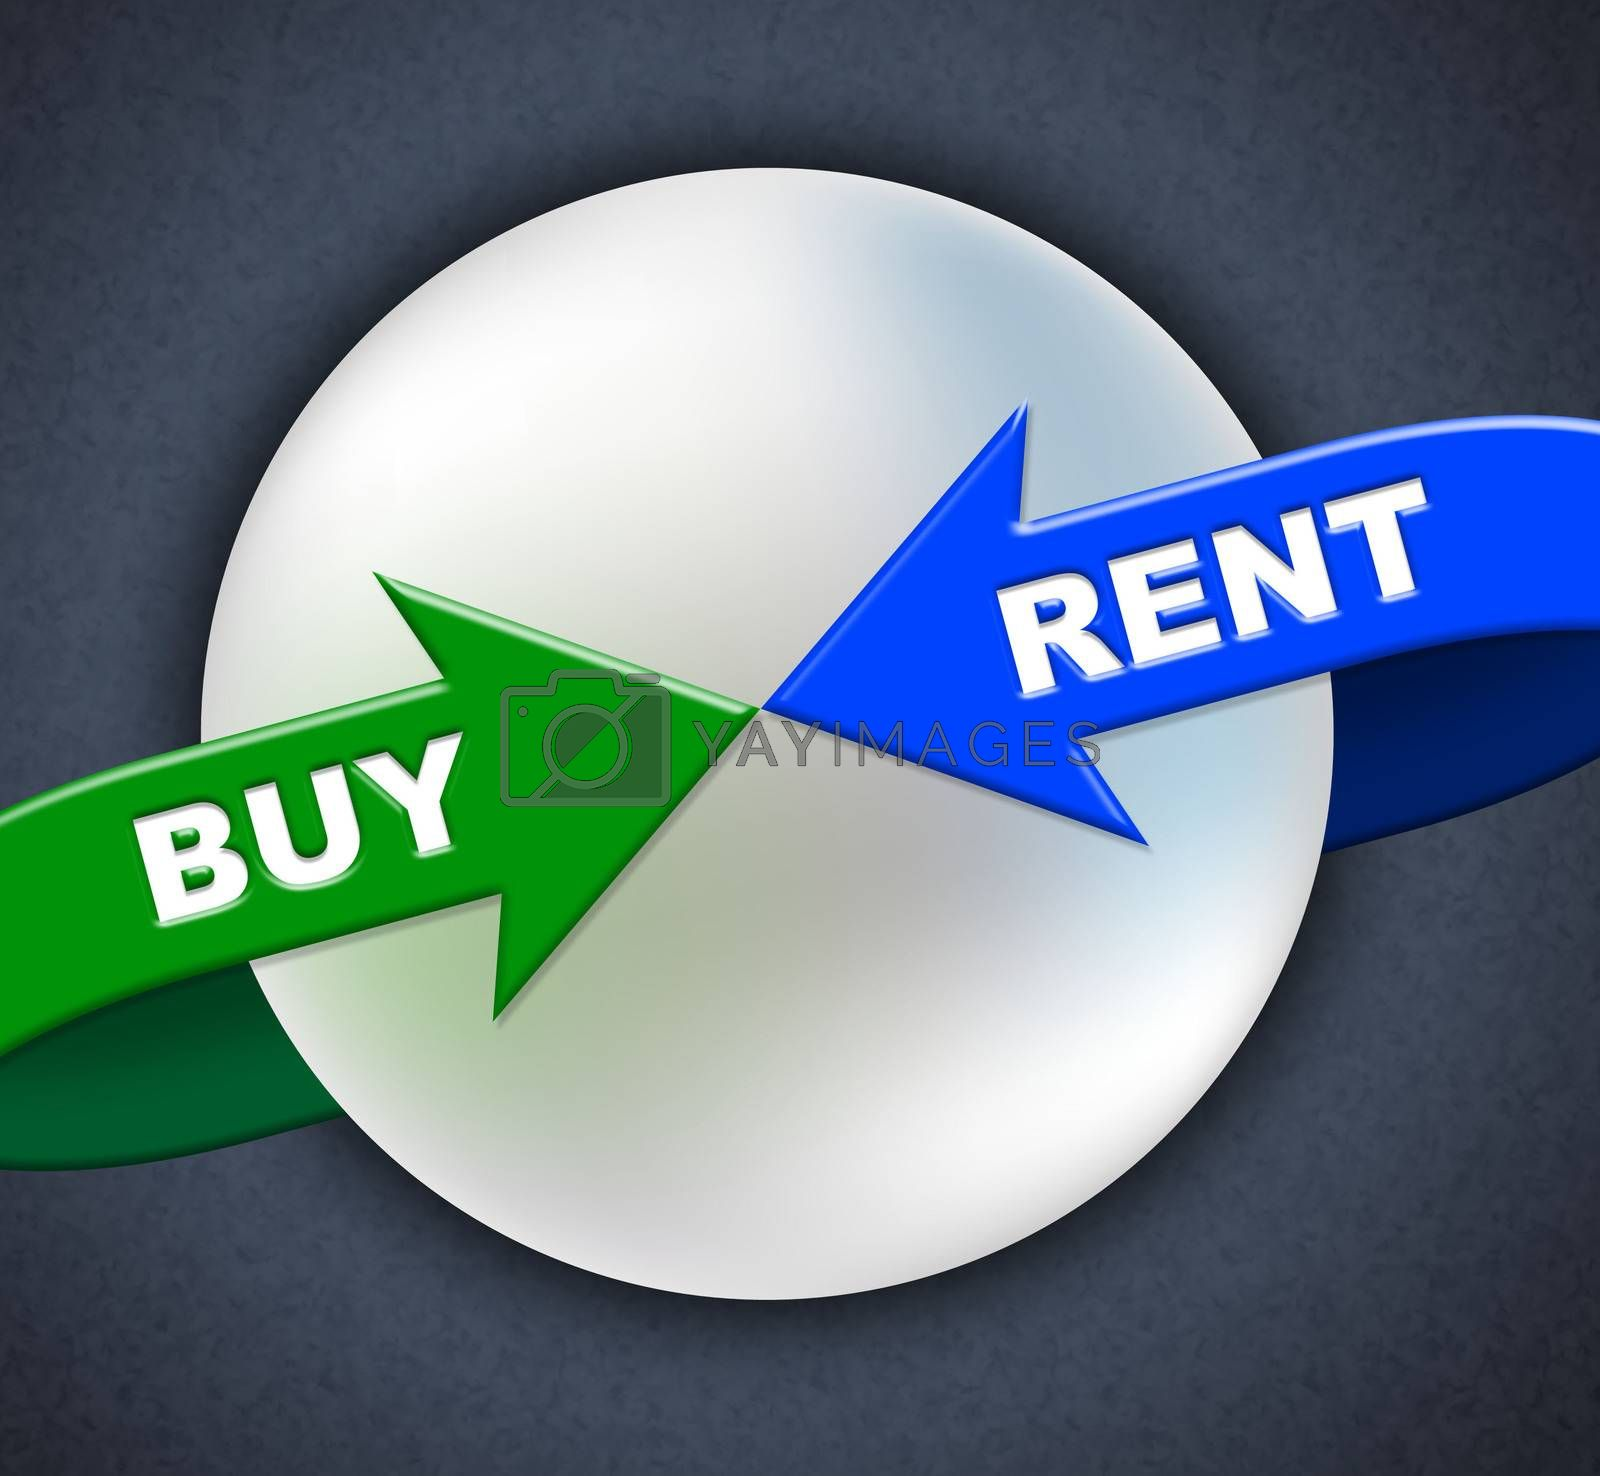 Buy Rent Arrows Indicates Lease Buyer And Purchase by stuartmiles